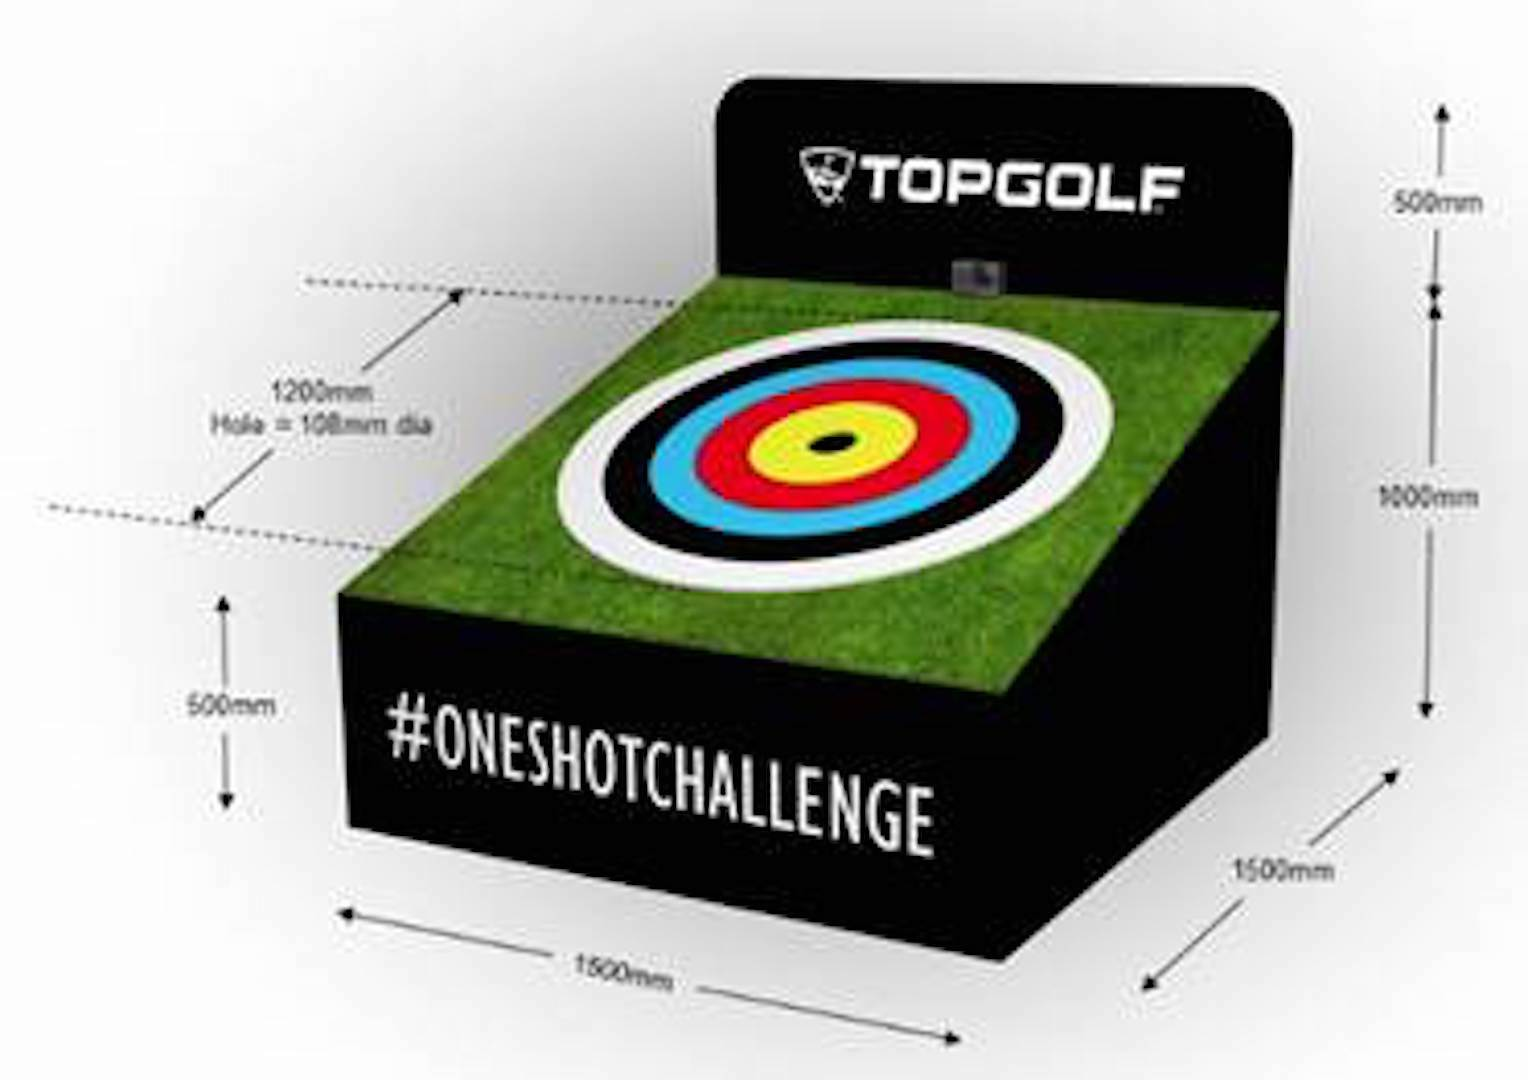 Get it in the hole for a prize of £1,000